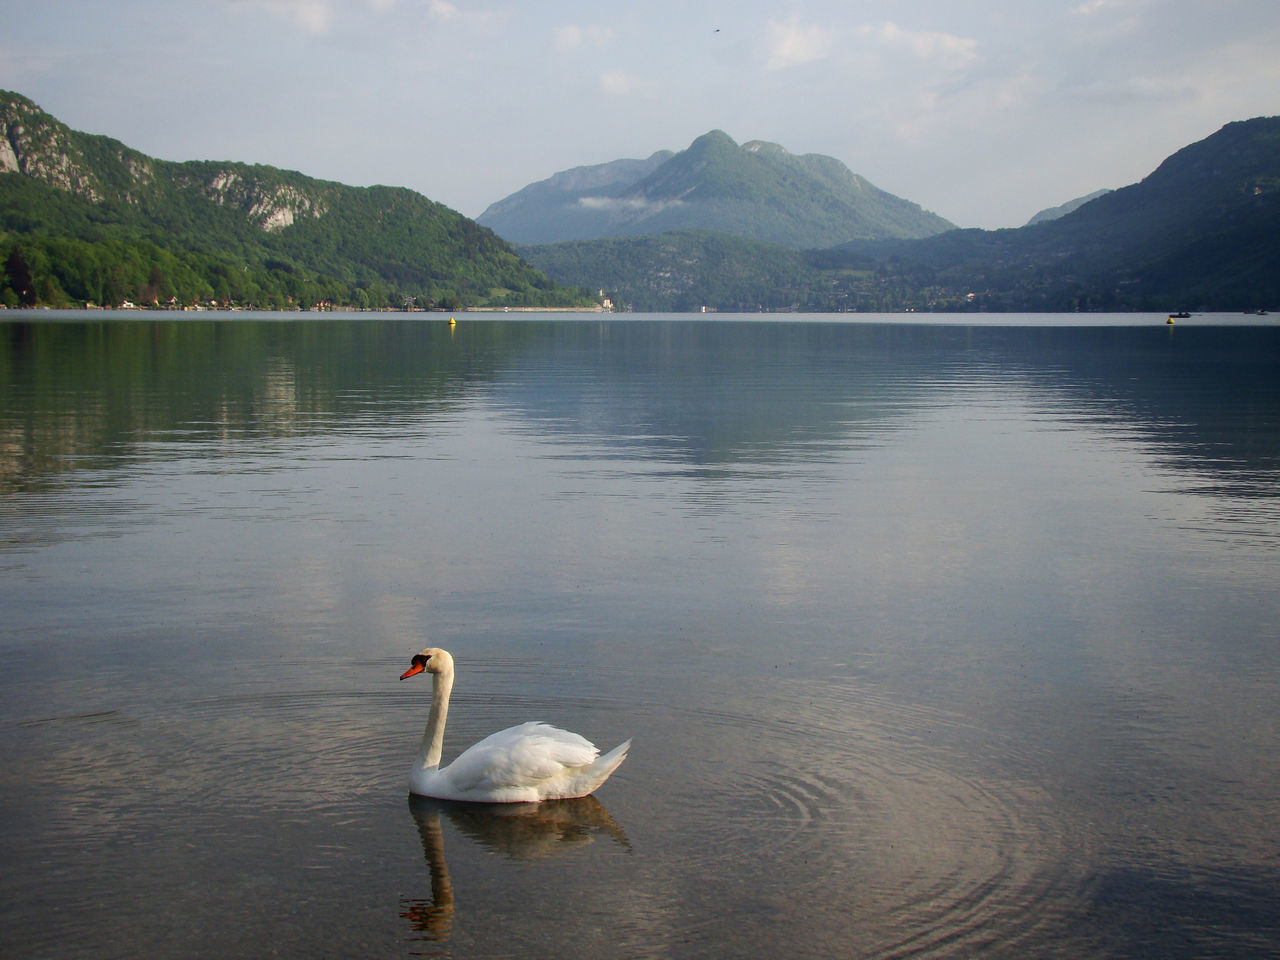 A lone swan on Lake Annecy in France Annecy, France Beauty In Nature Bird Day Europe France Idyllic Lake Mountain Nature Nature No People One Animal Outdoors Scenery Swan Tranquility Travel Destinations Water Water Bird